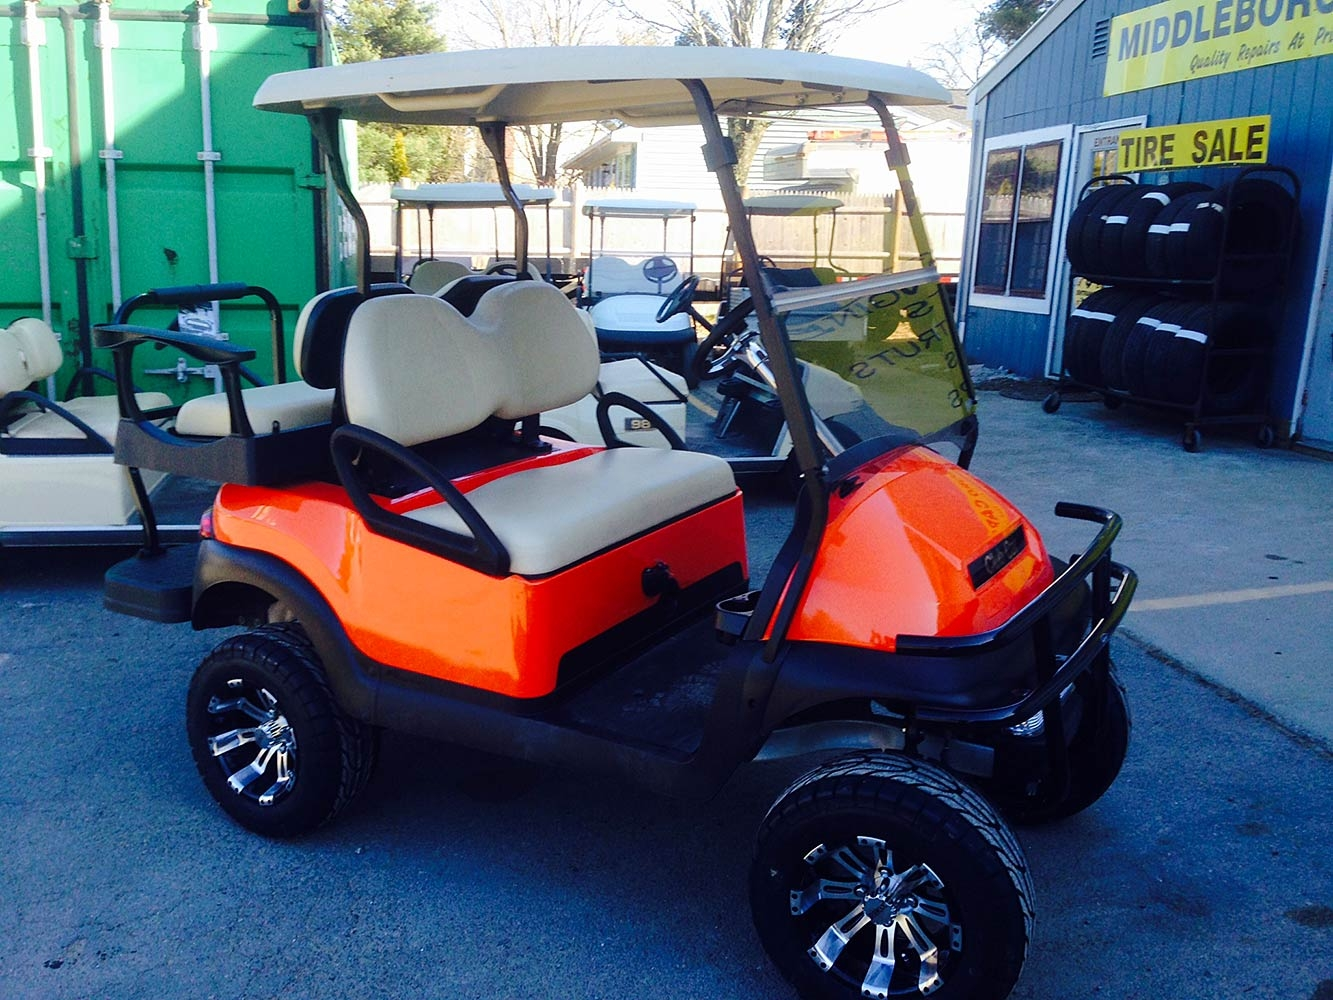 Gallery | South S Golf Cars Sales, Rentals Service & Parts on motor boat engine, 3 cylinder engine, 10 hp horizontal shaft engine, ktm engine, golf carts from rv, motorcycle engine, subaru engine, snowmobile engine, howhit crossfire 150 engine, forklift engine, golf car motor, tractor engine, harley davidson engine, marine engine, gmc engine, pocket bike engine,